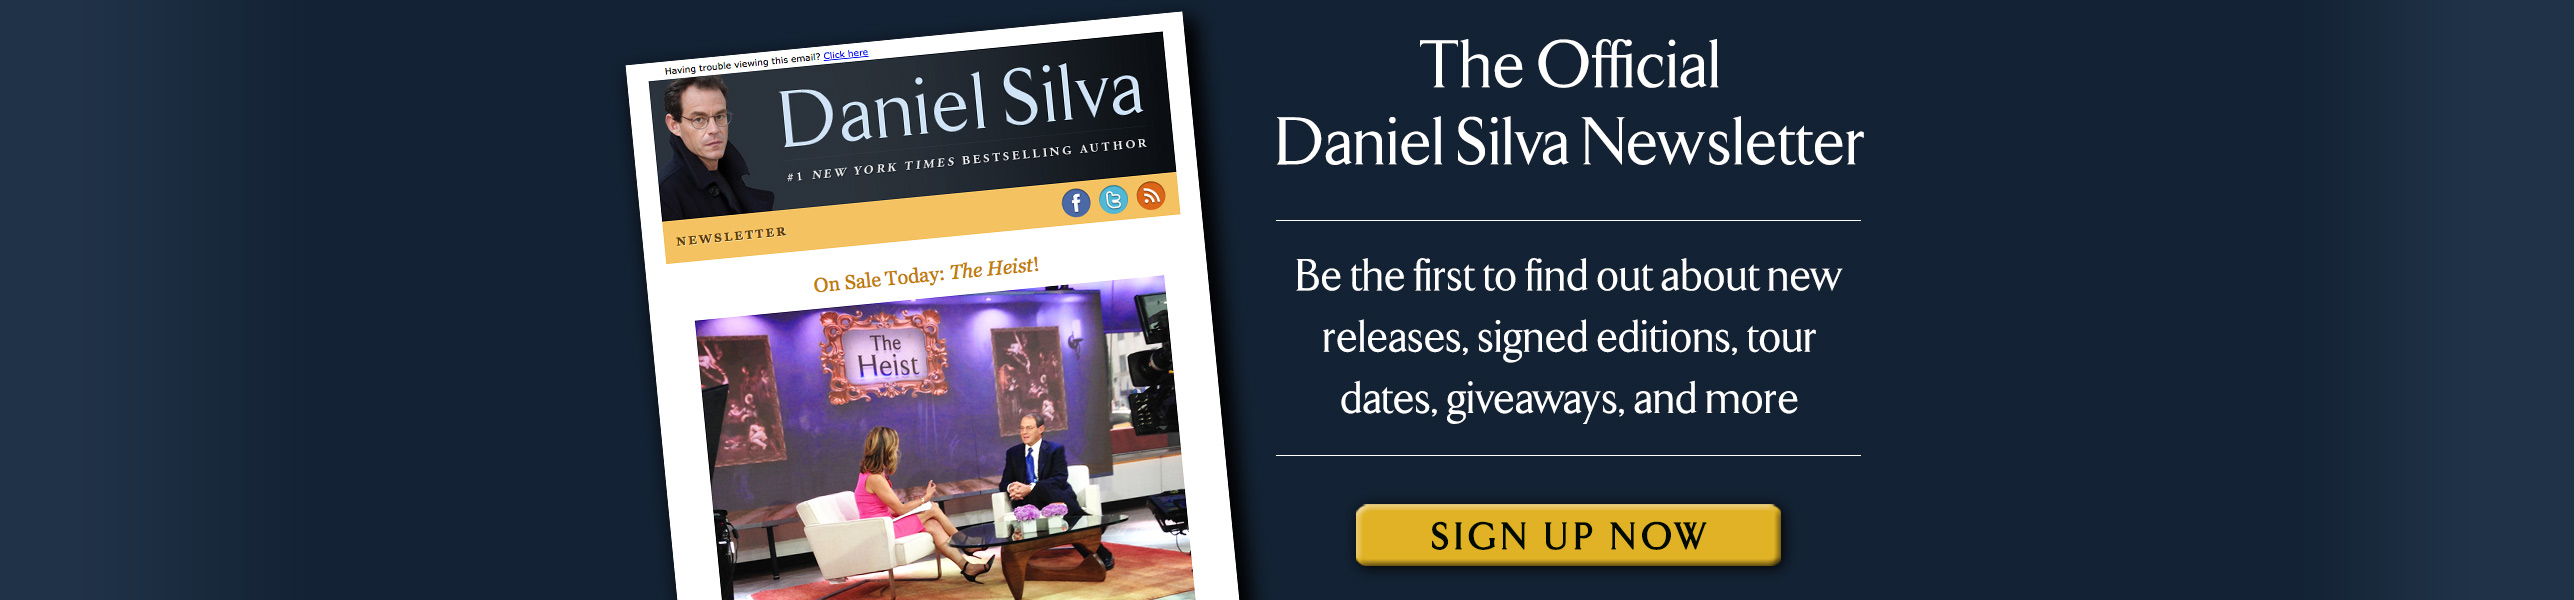 Join the Daniel Silva Newsletter